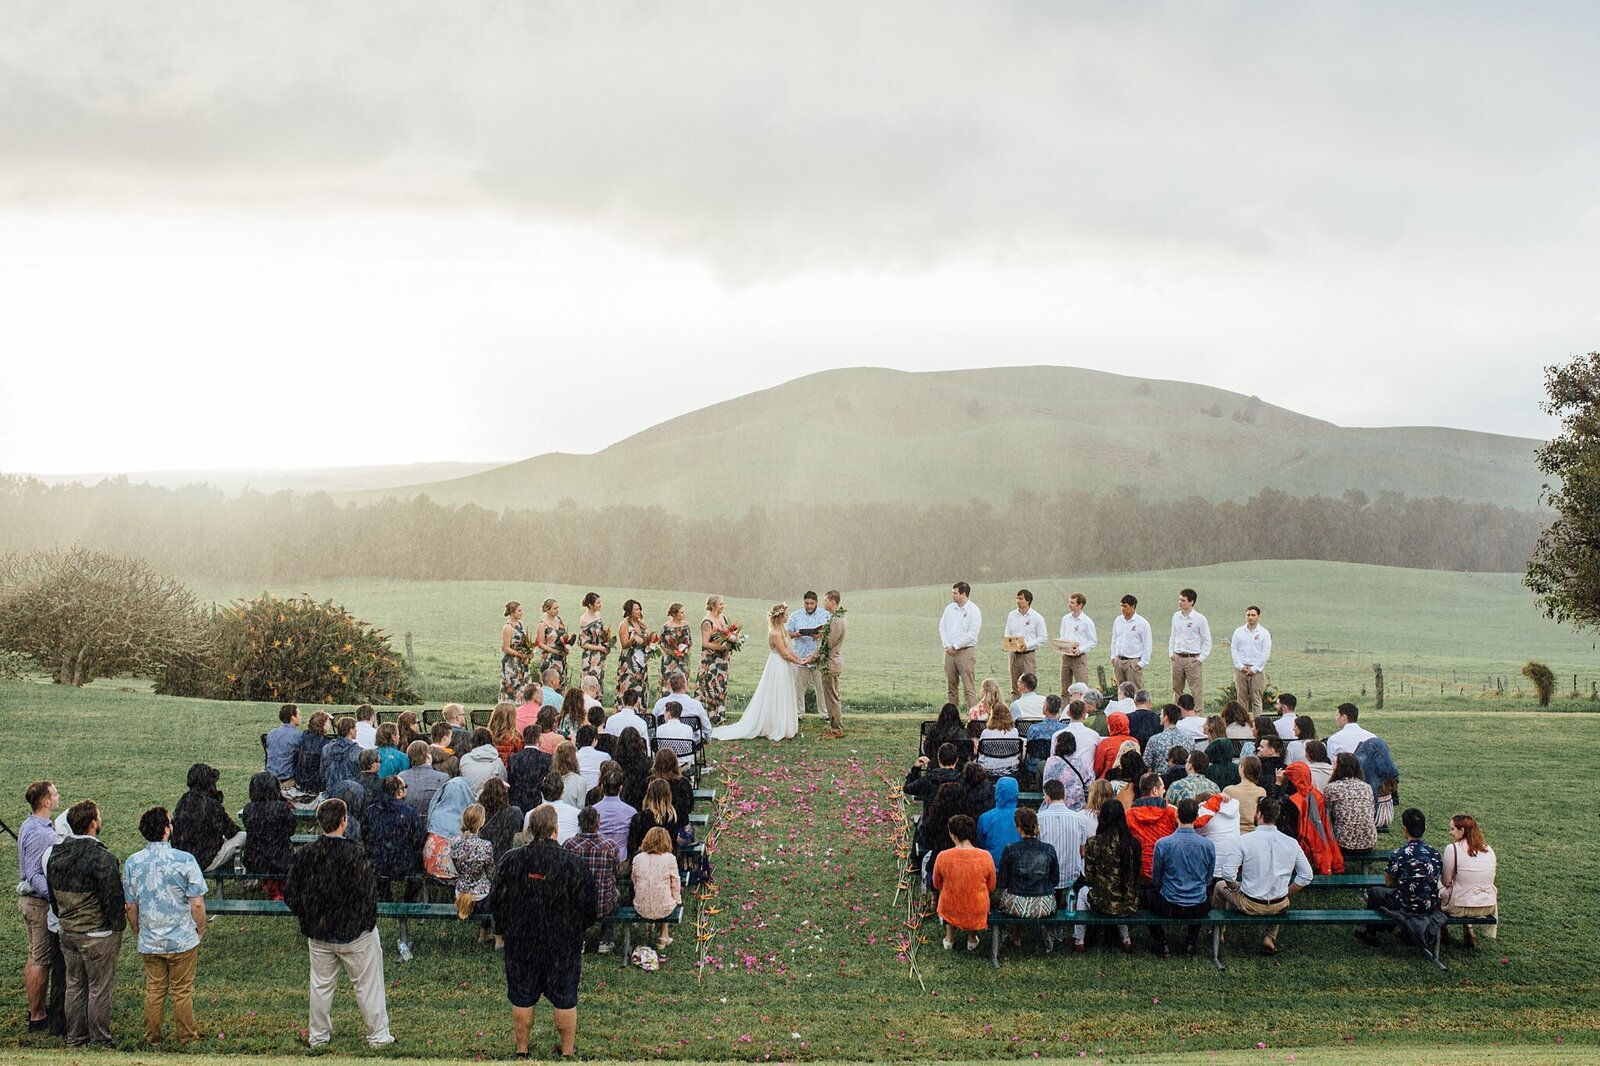 rainy wedding ceremony in hawaii